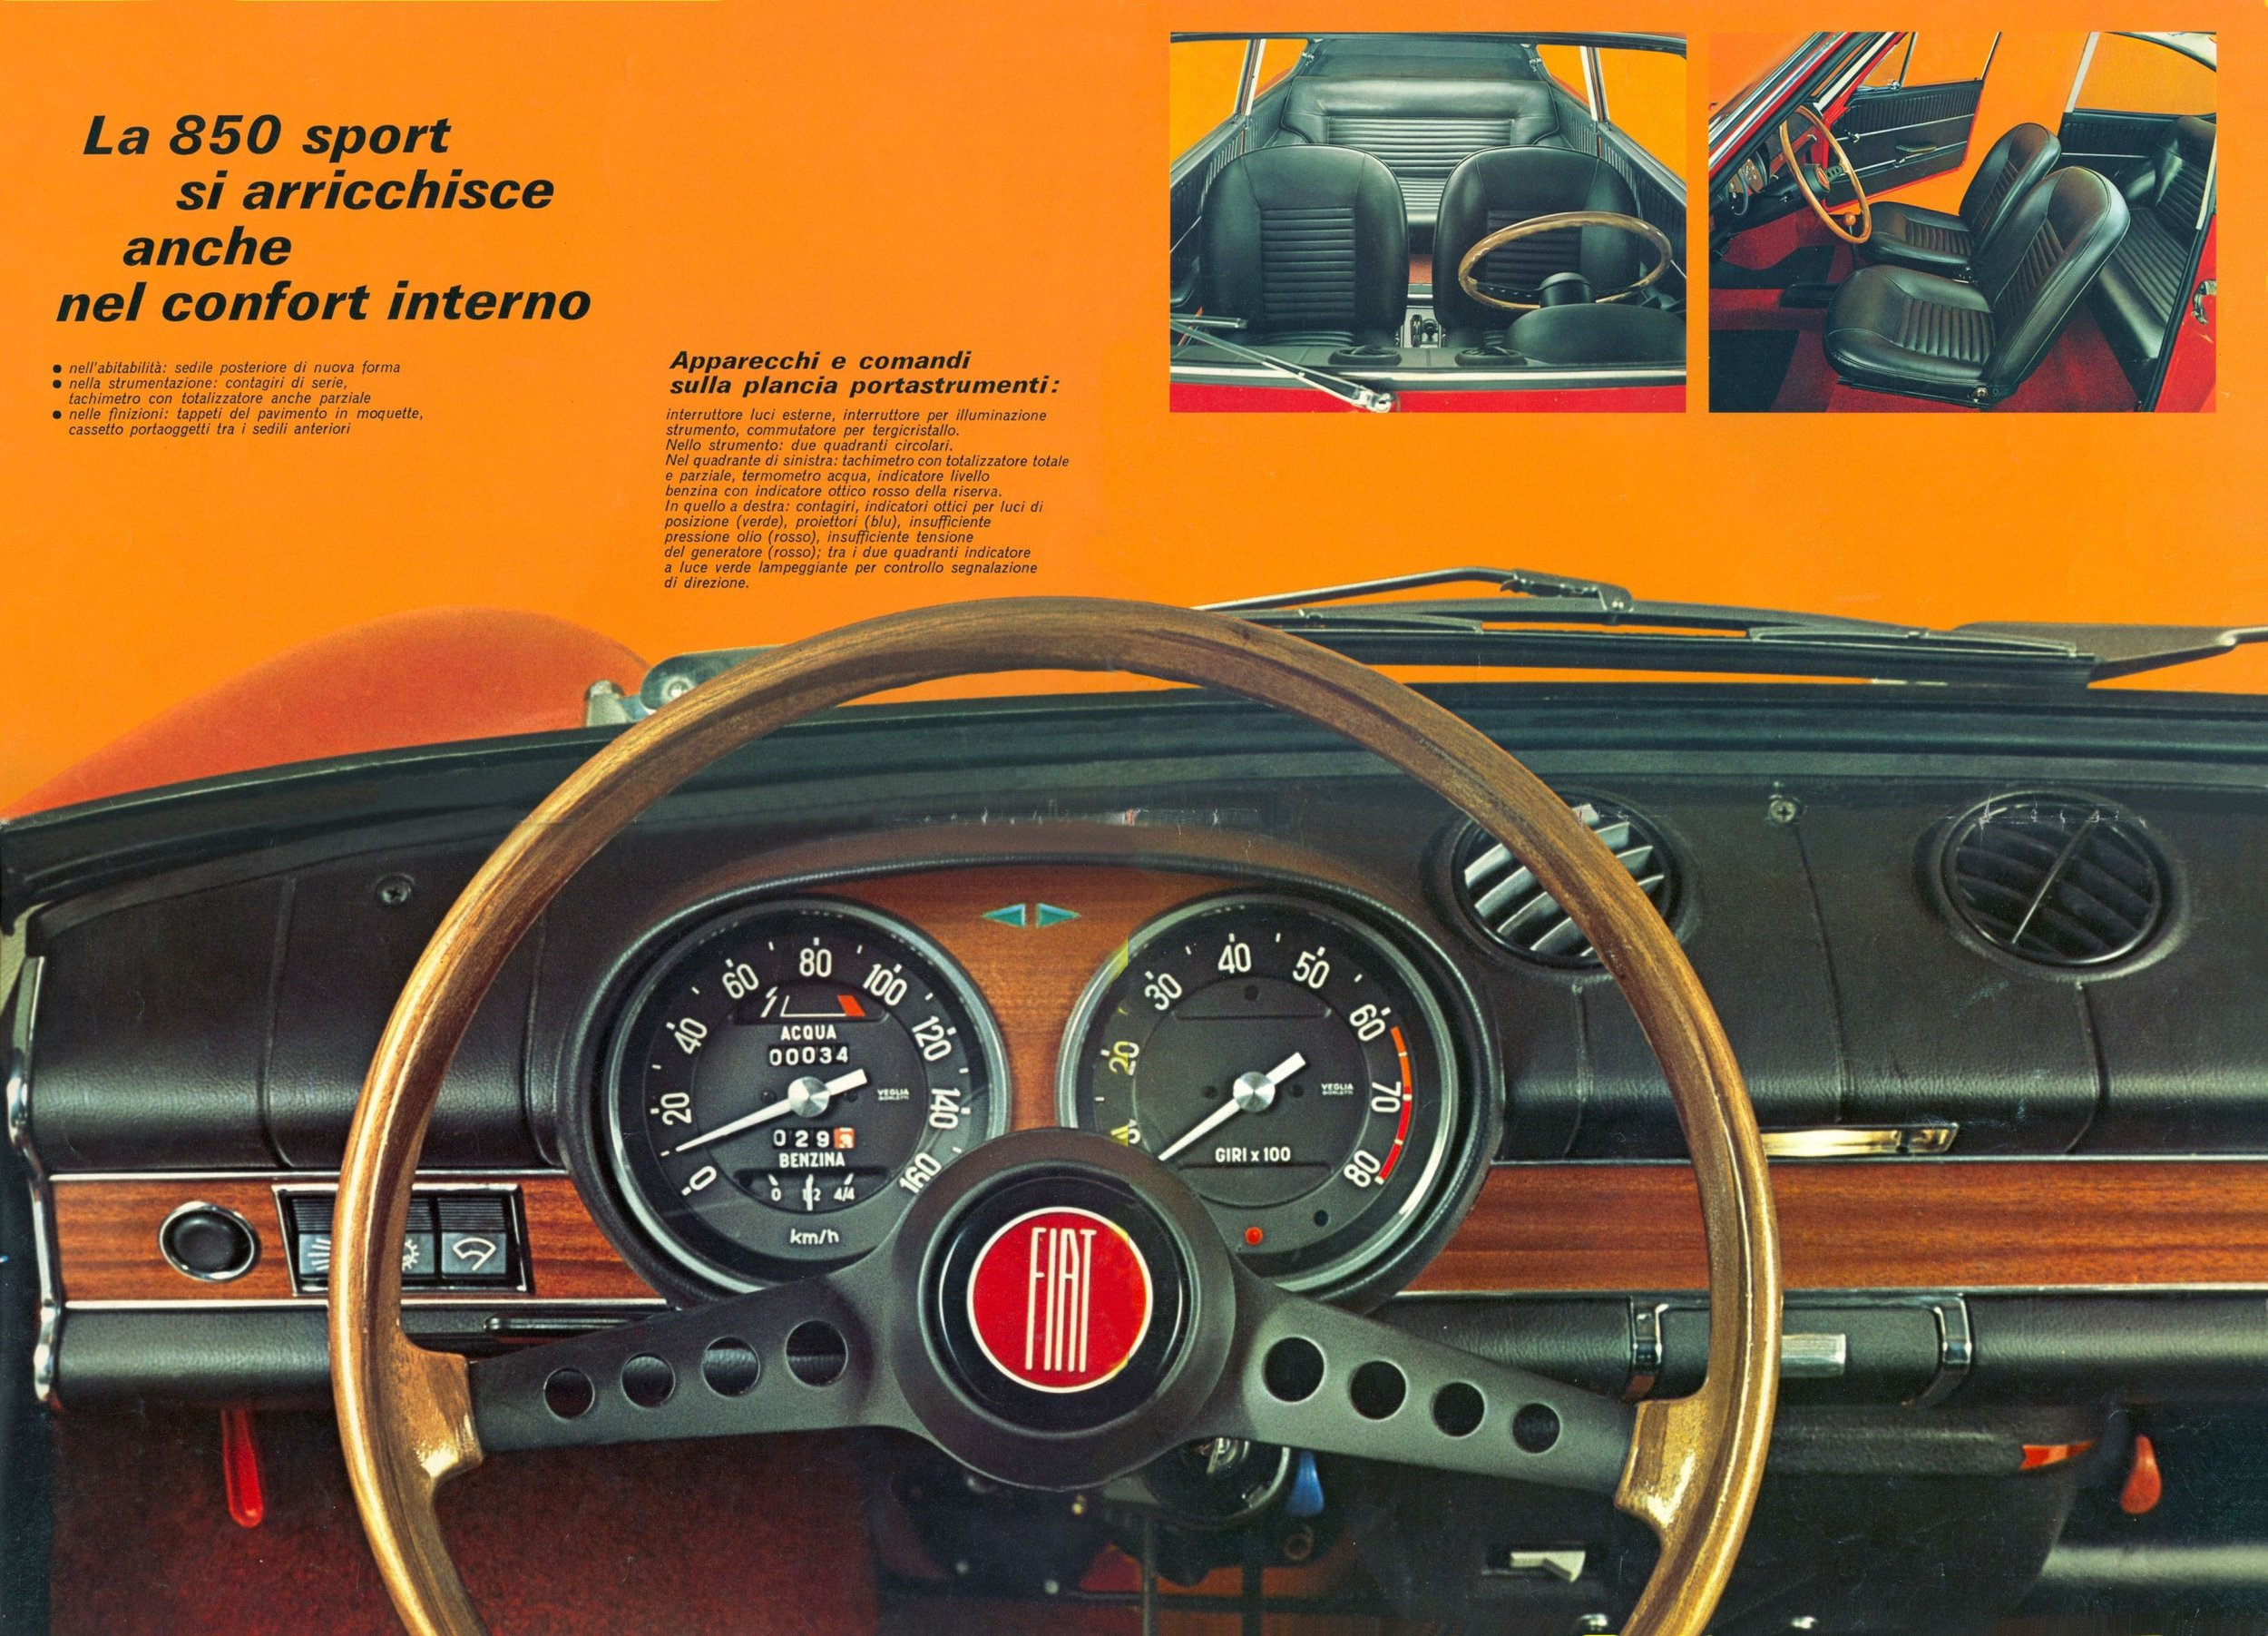 The 850 Coupe had a functional, stylish interior typical of Italian cars of the era.